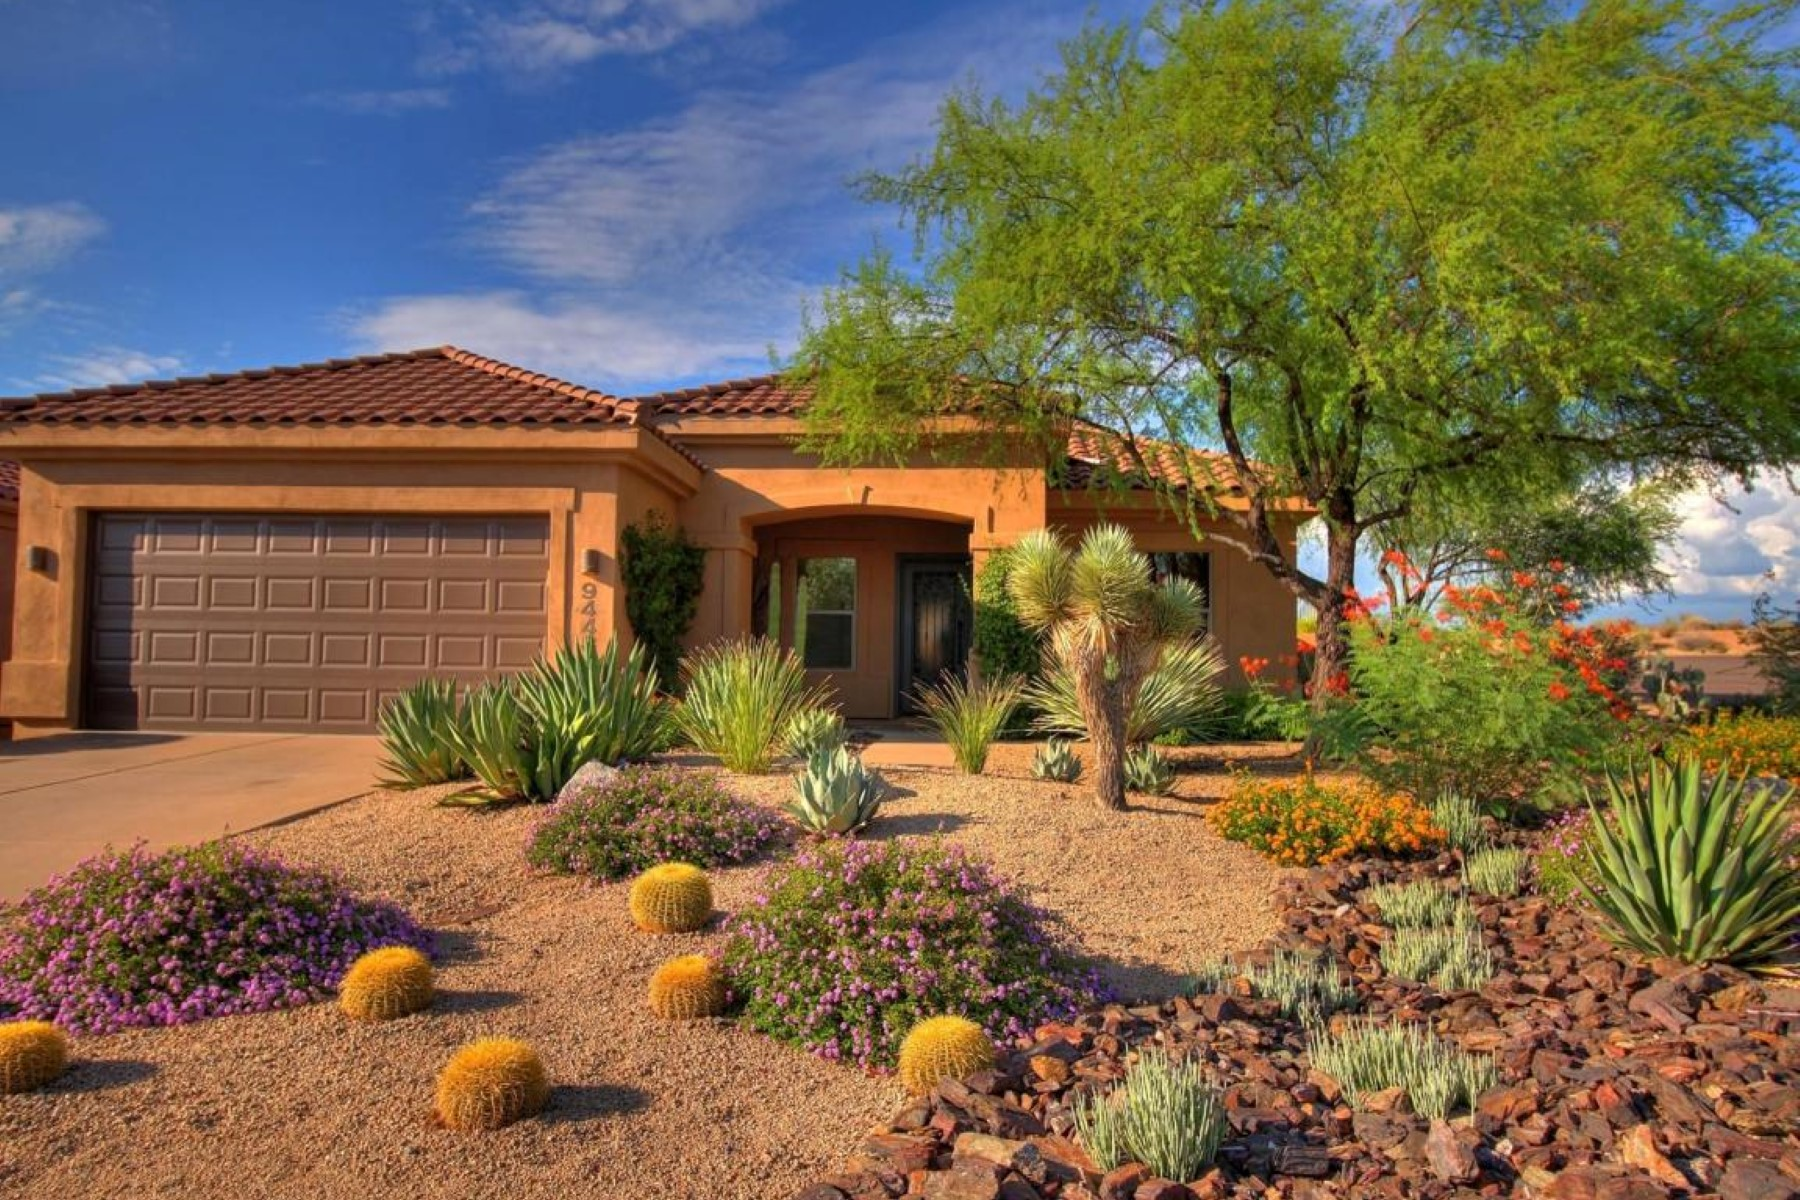 Single Family Home for Sale at Immaculate Ranch Home 9448 E WHITEWING DR Scottsdale, Arizona 85262 United States